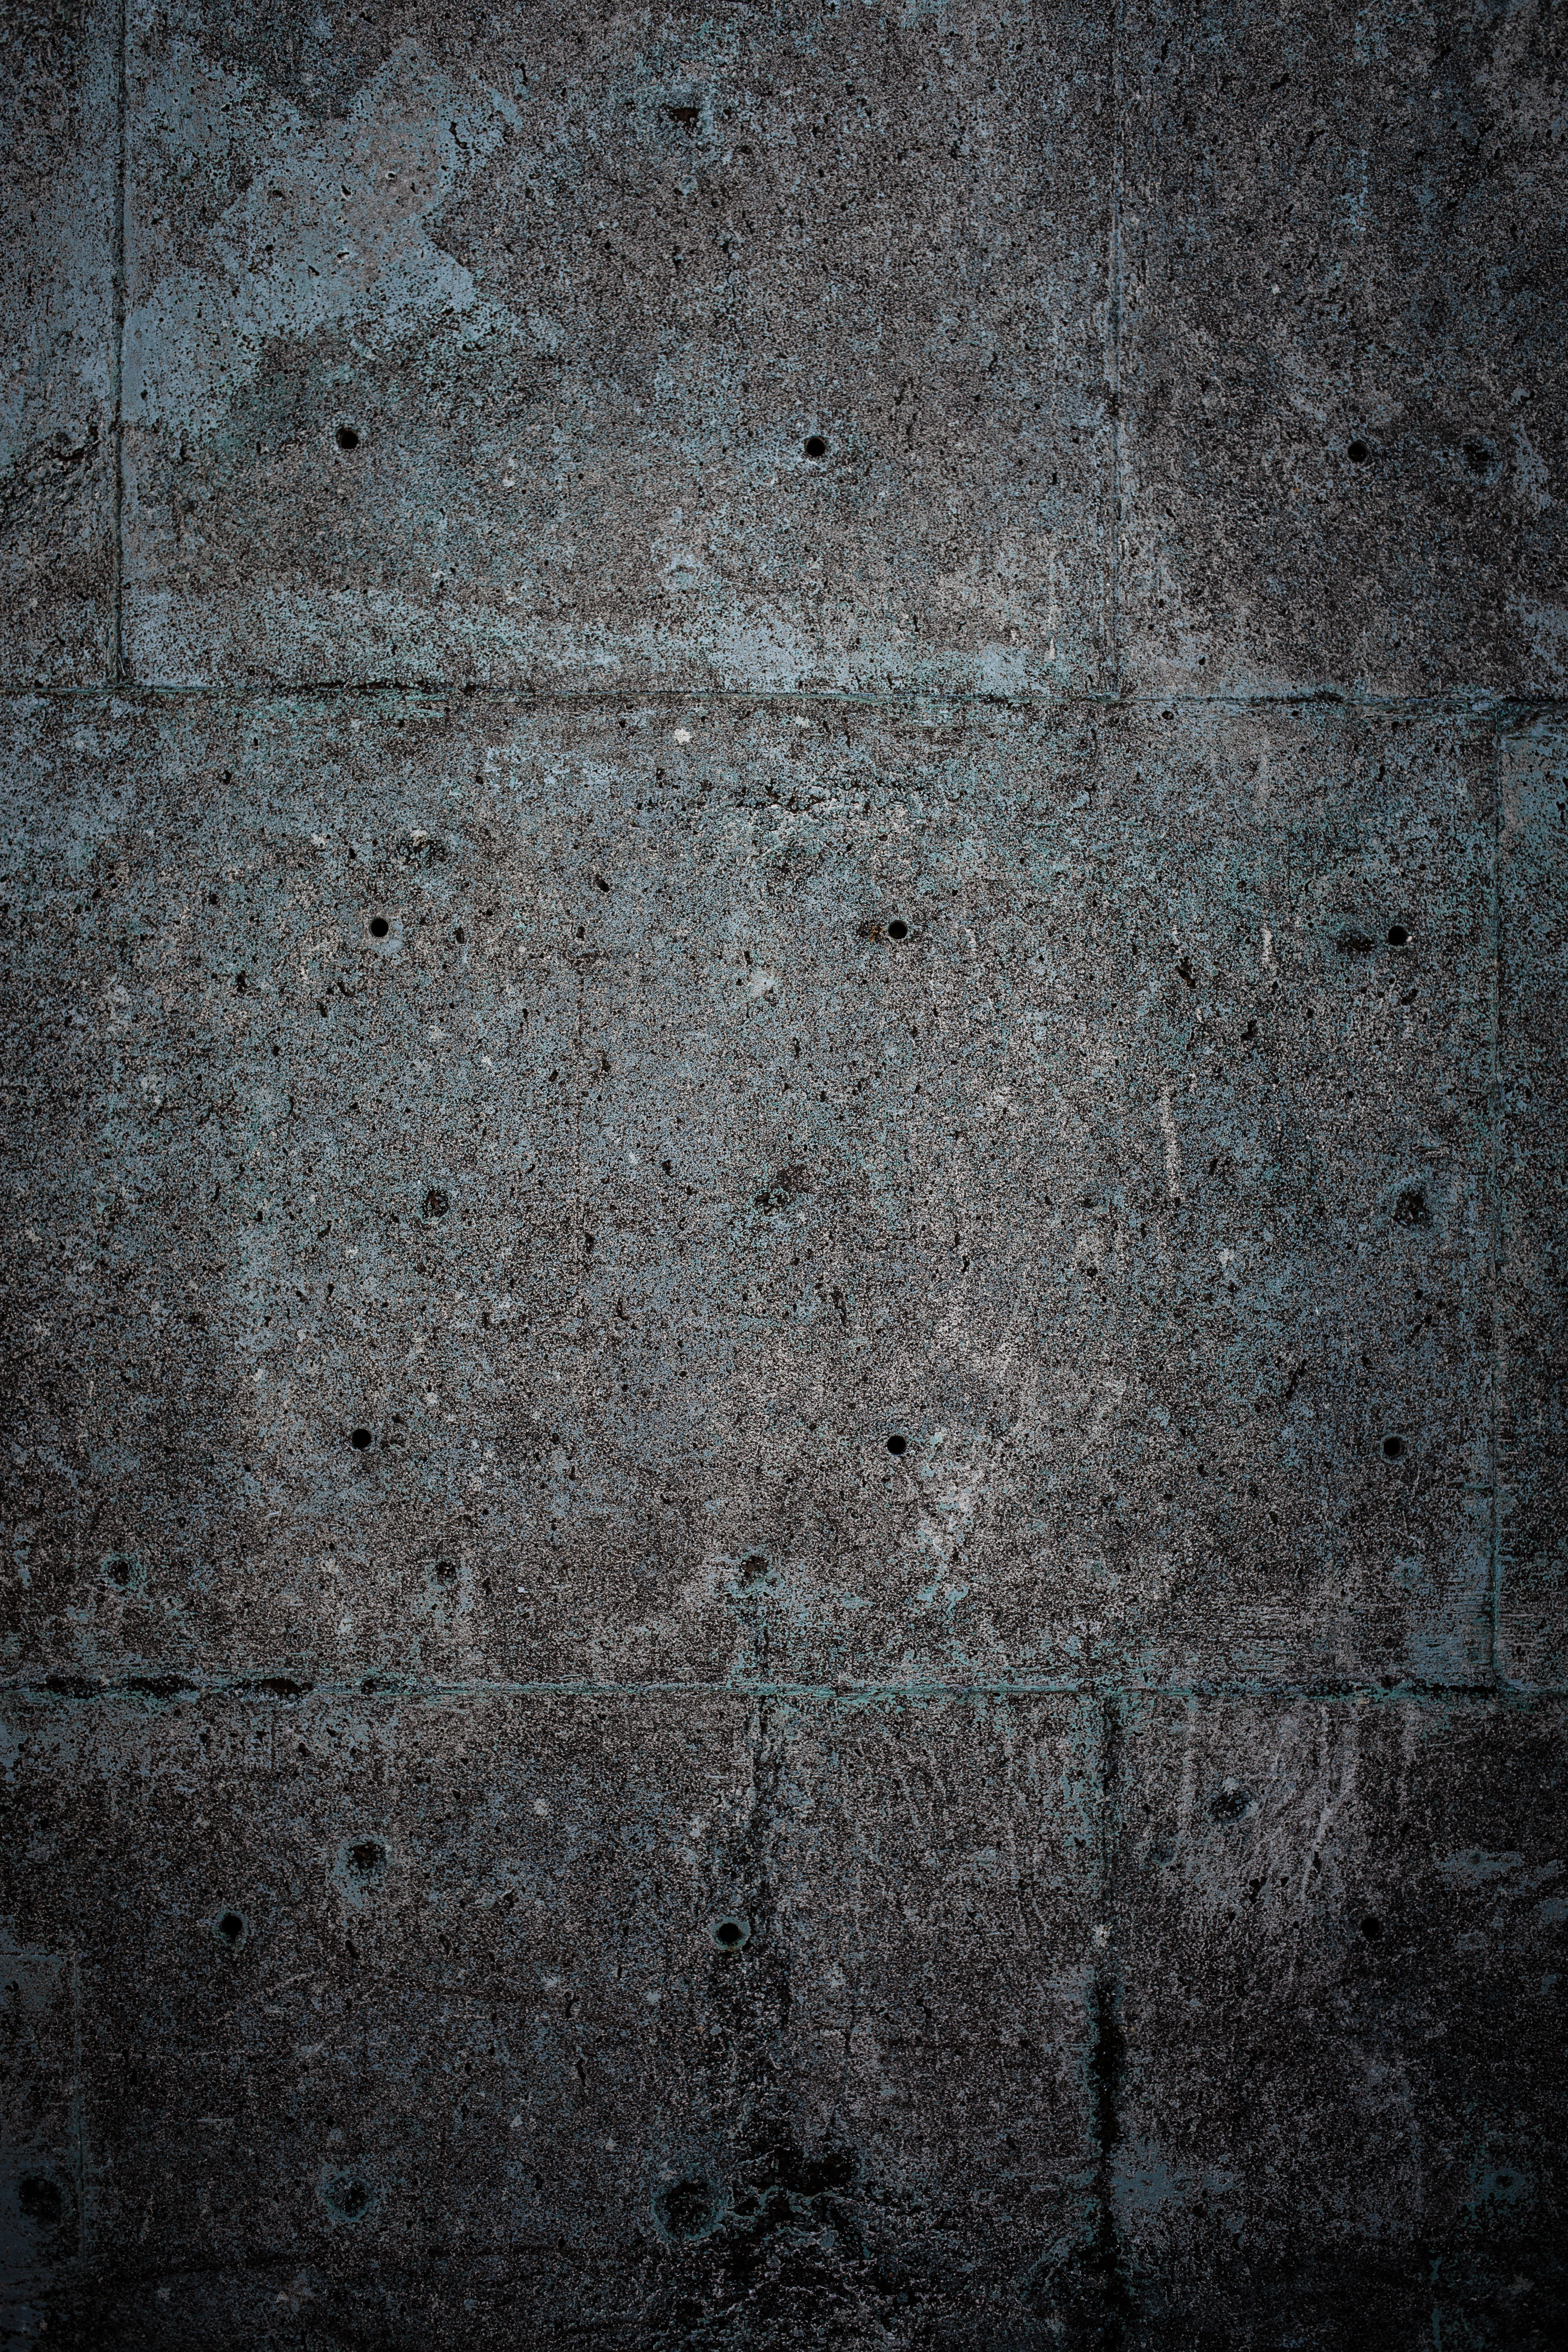 Grunge blue concrete texture photo